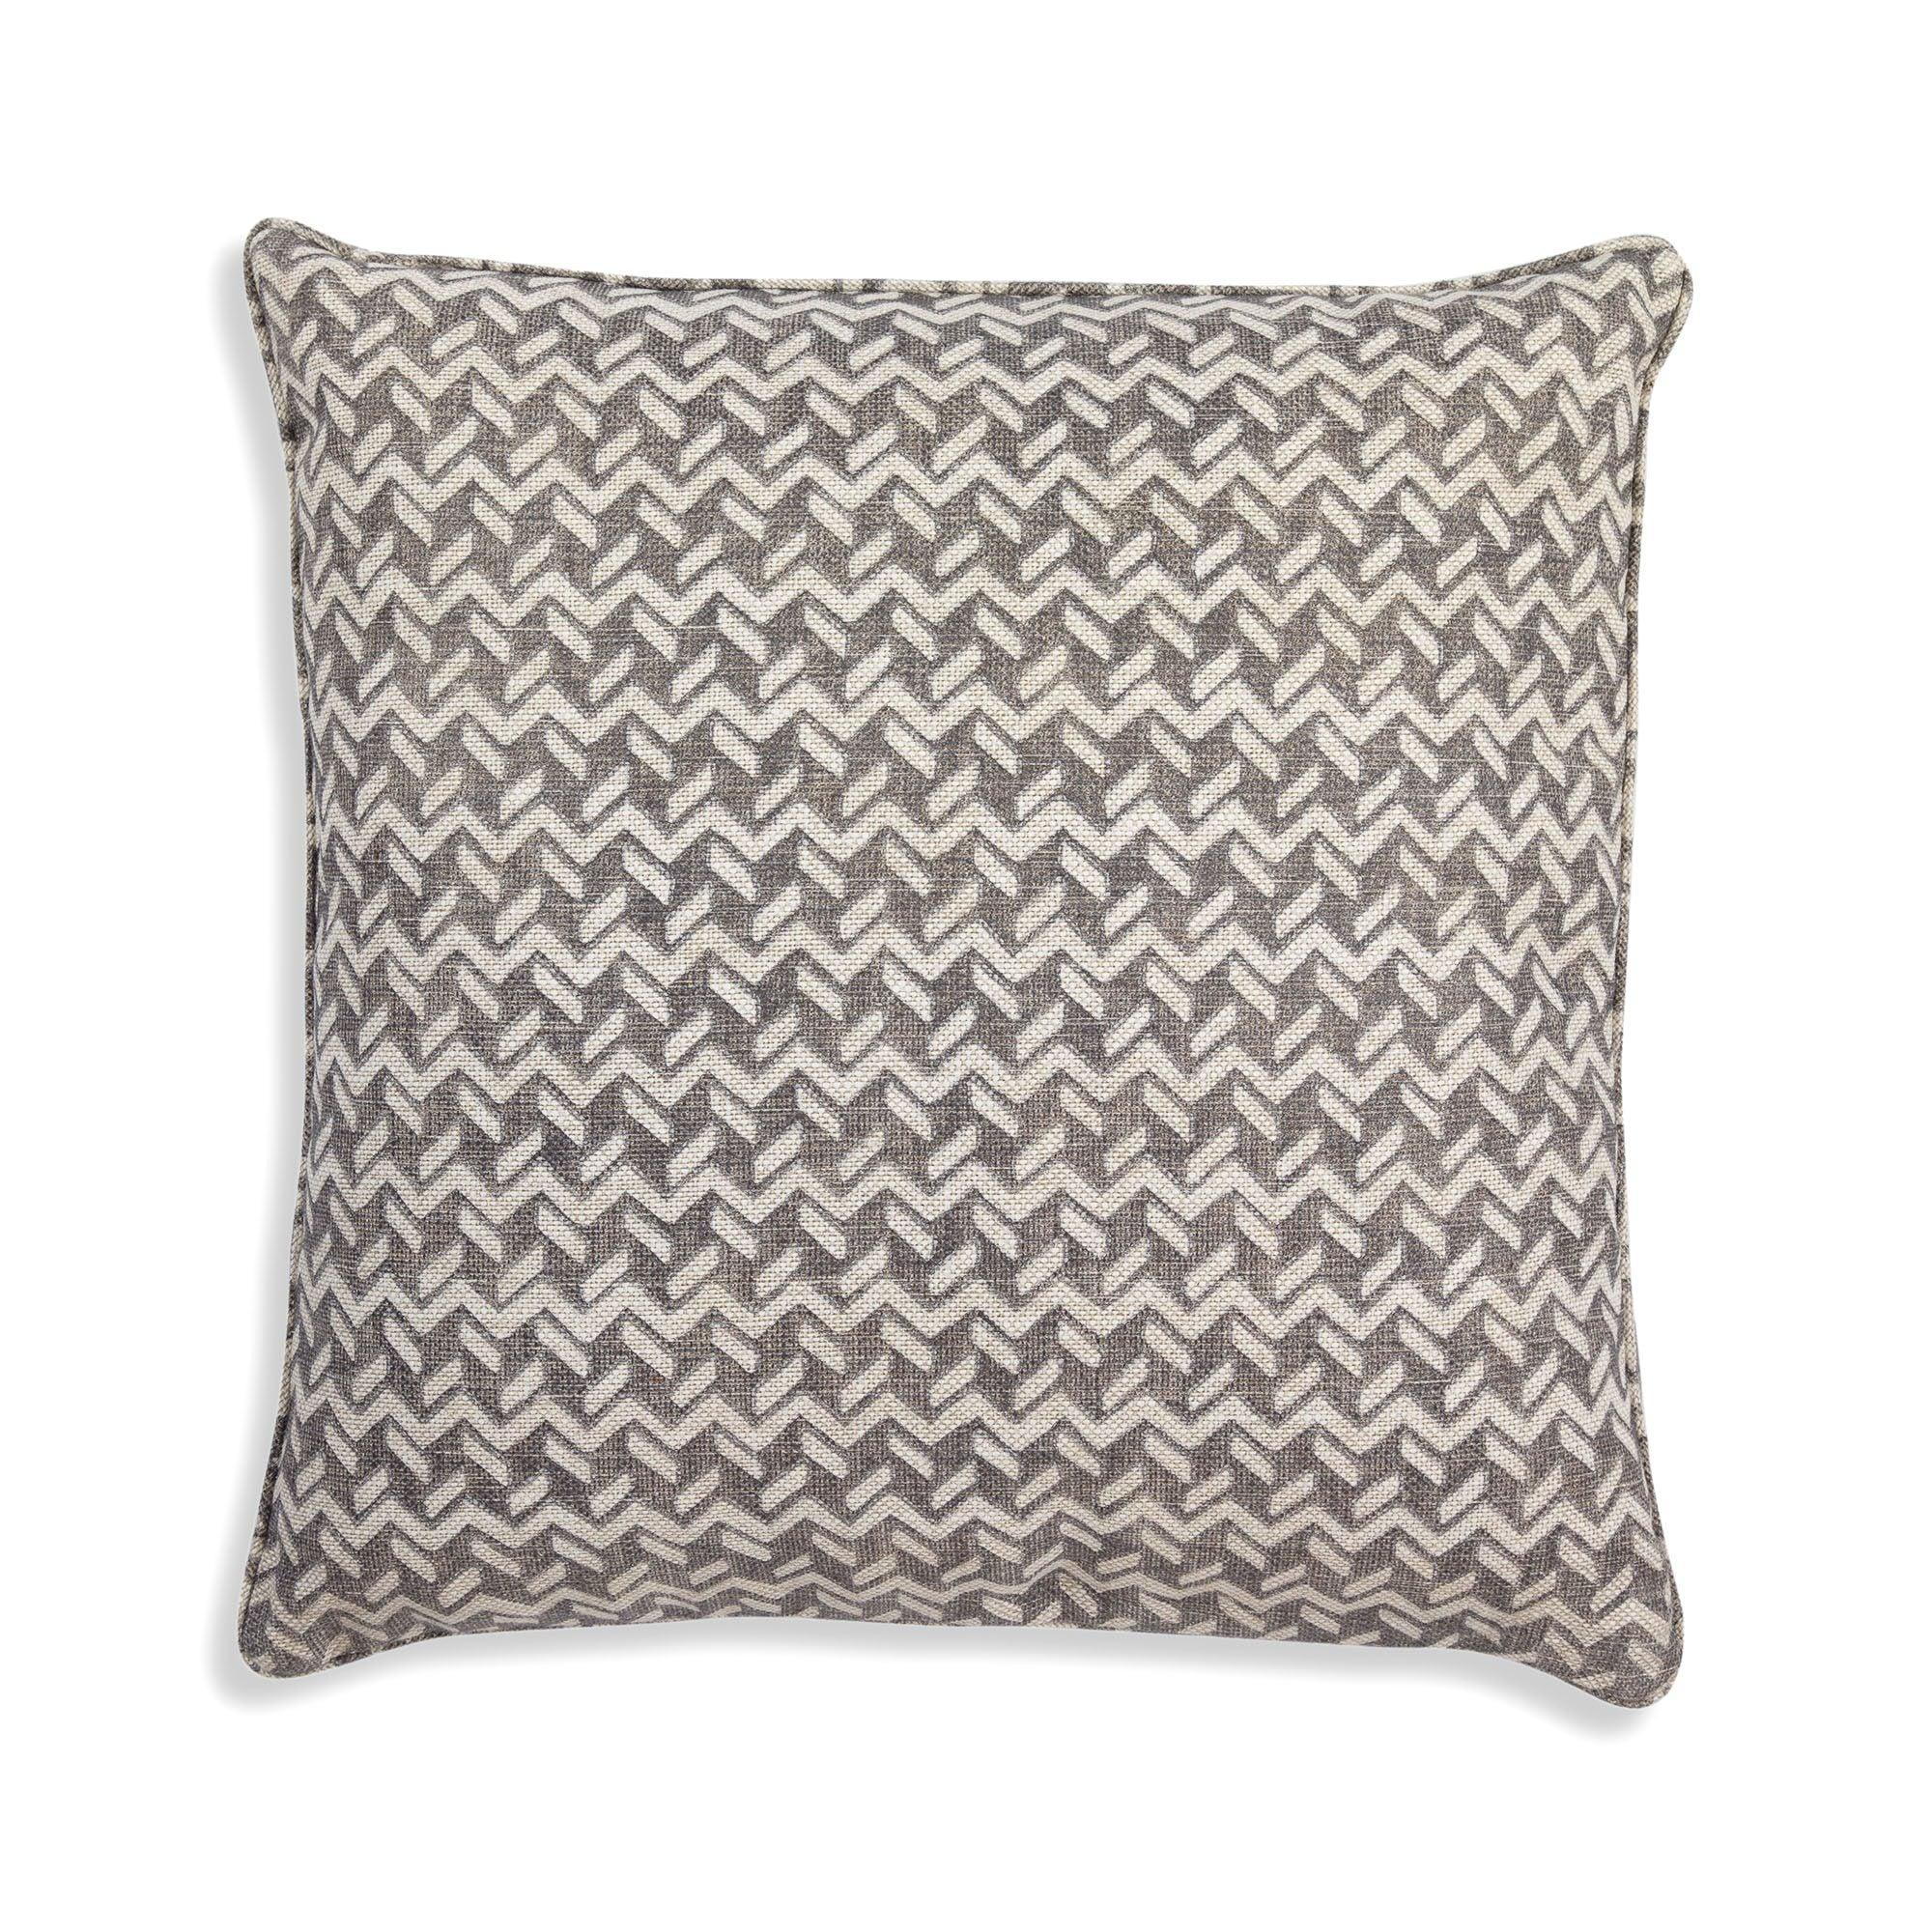 Fermoie Cushion in Neutral Chiltern